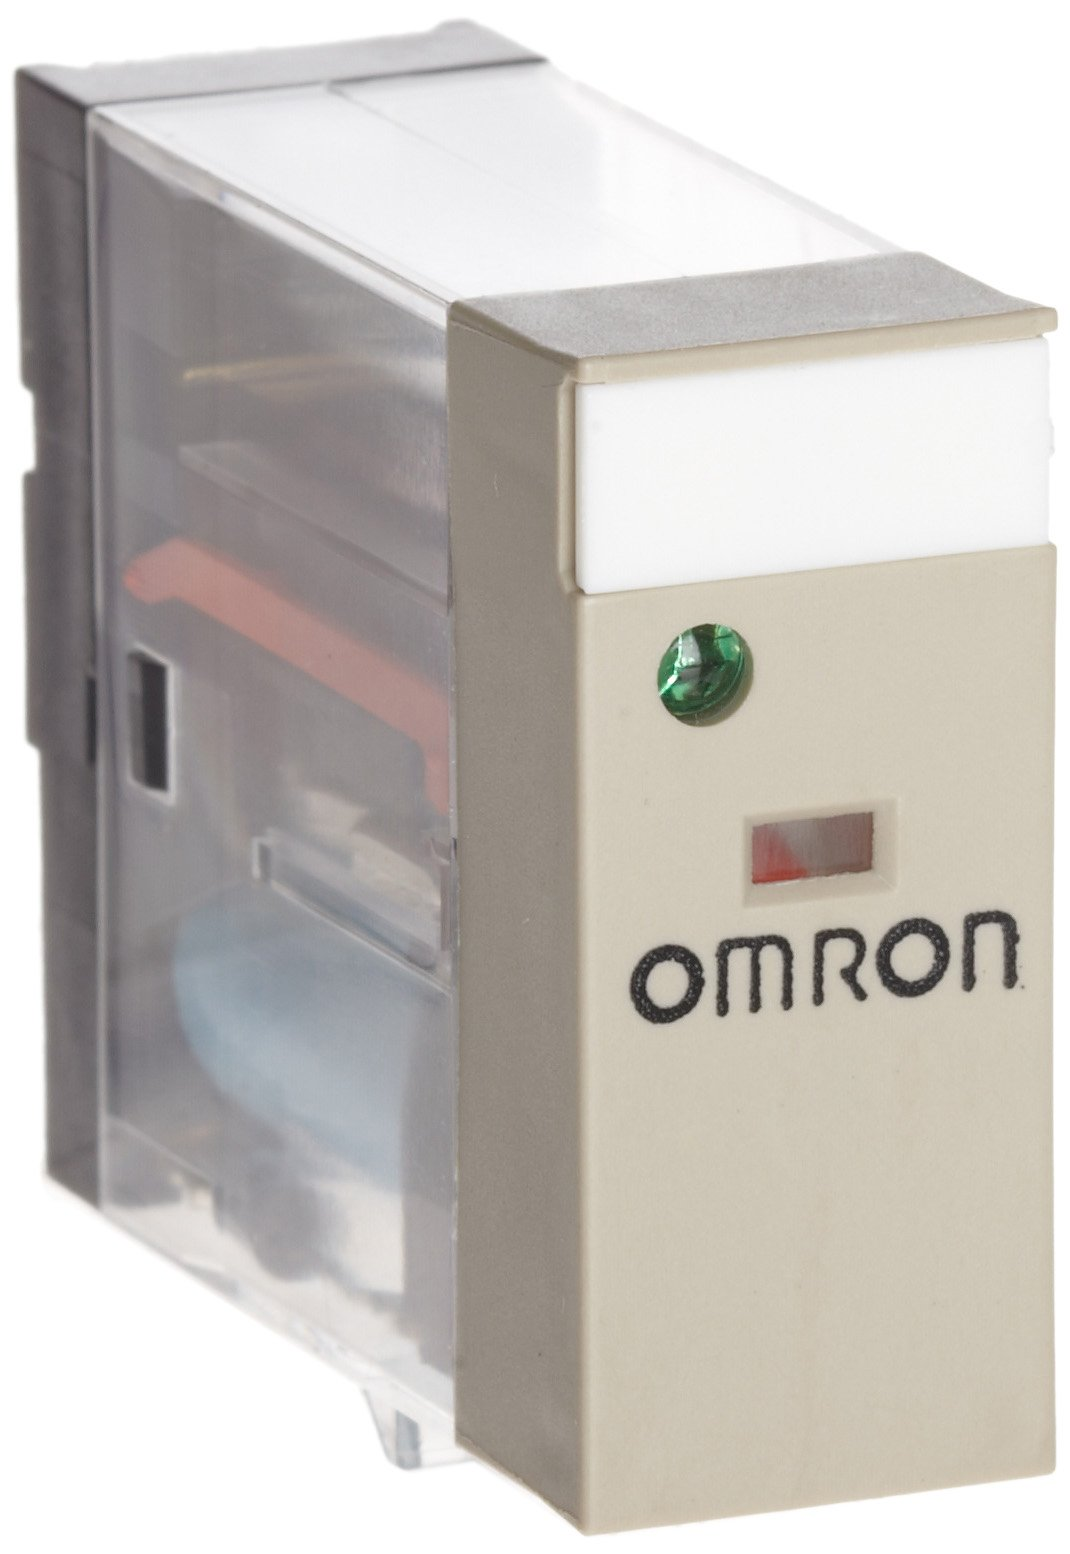 Omron G2R-1-SND DC24(S) General Purpose Relay, LED Indicator and Diode, Plug-In Terminals, Single Pole Double Throw Contacts, 21.6 mA Rated Load Current, 24 VDC Rated Load Voltage